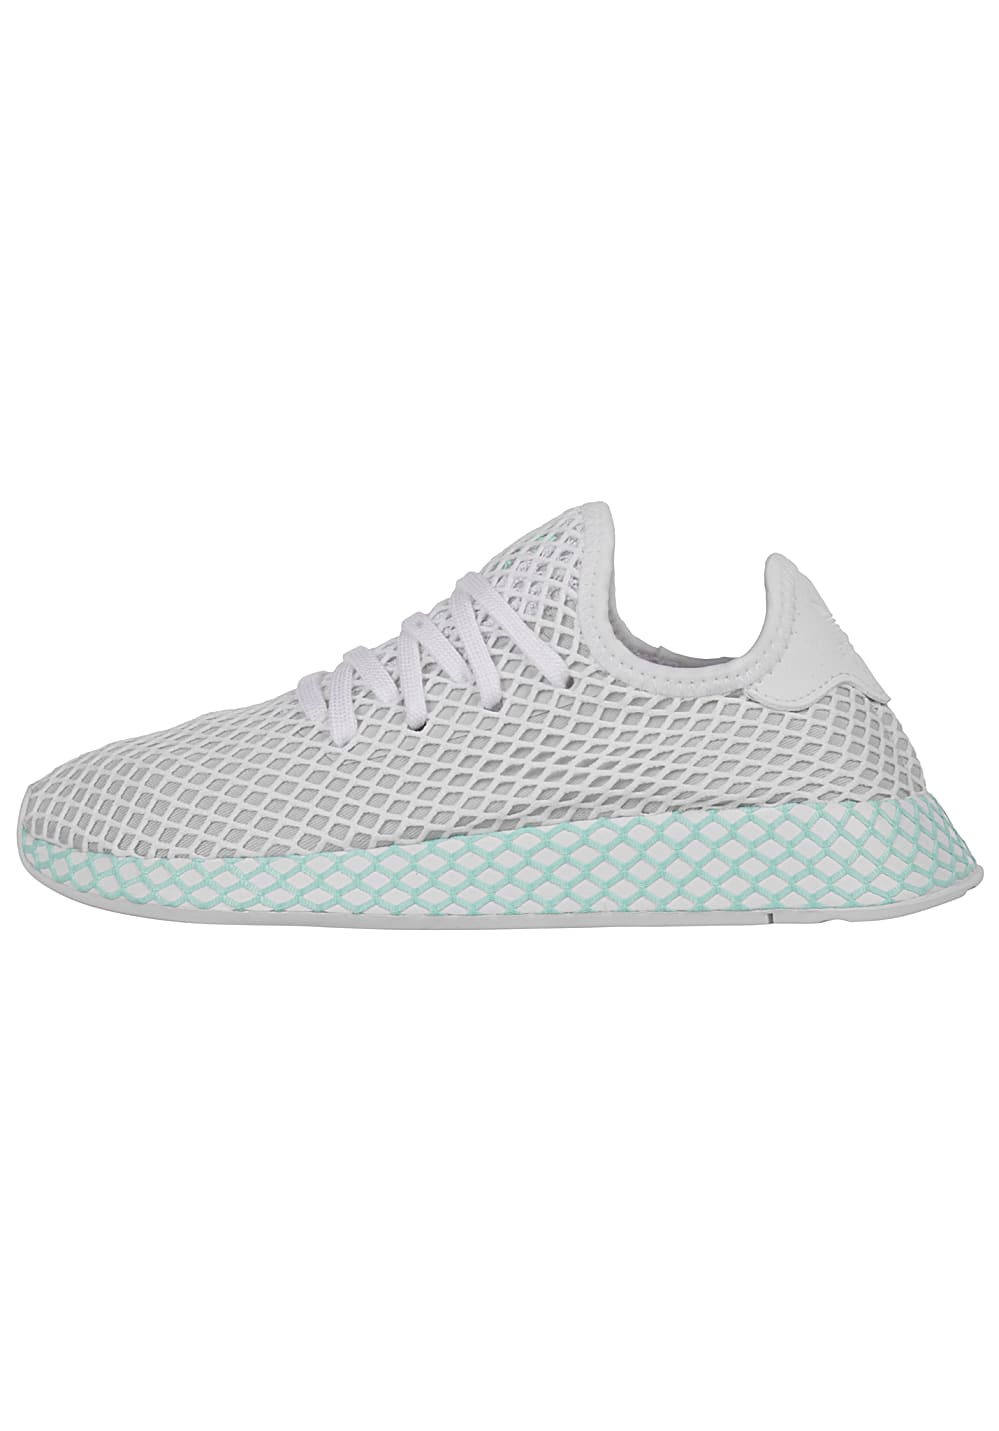 85d1faf41ba20 ADIDAS ORIGINALS Deerupt Runner - Sneakers for Women - White ...